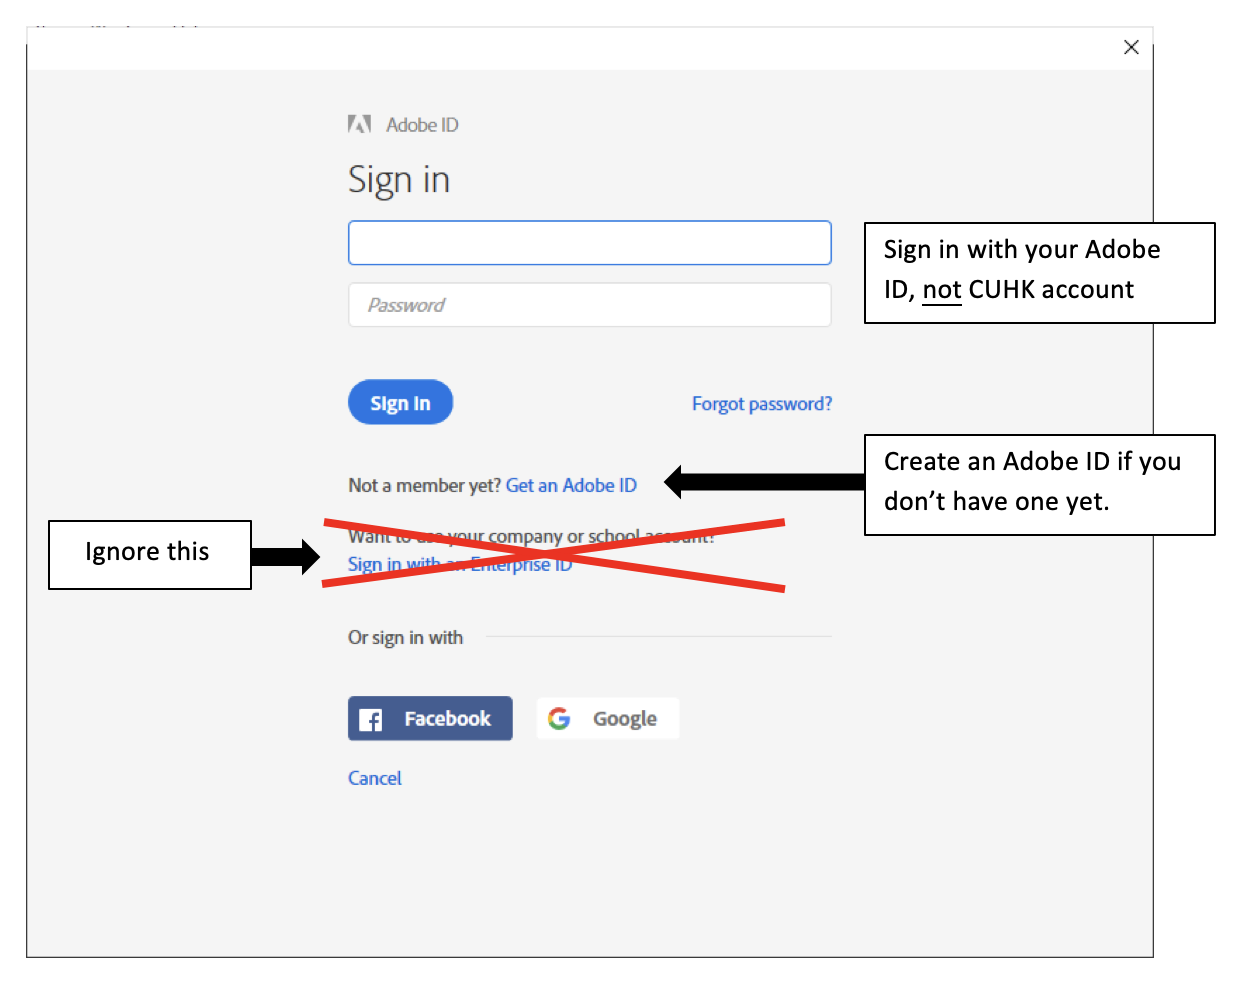 Adobe ID sign in screen